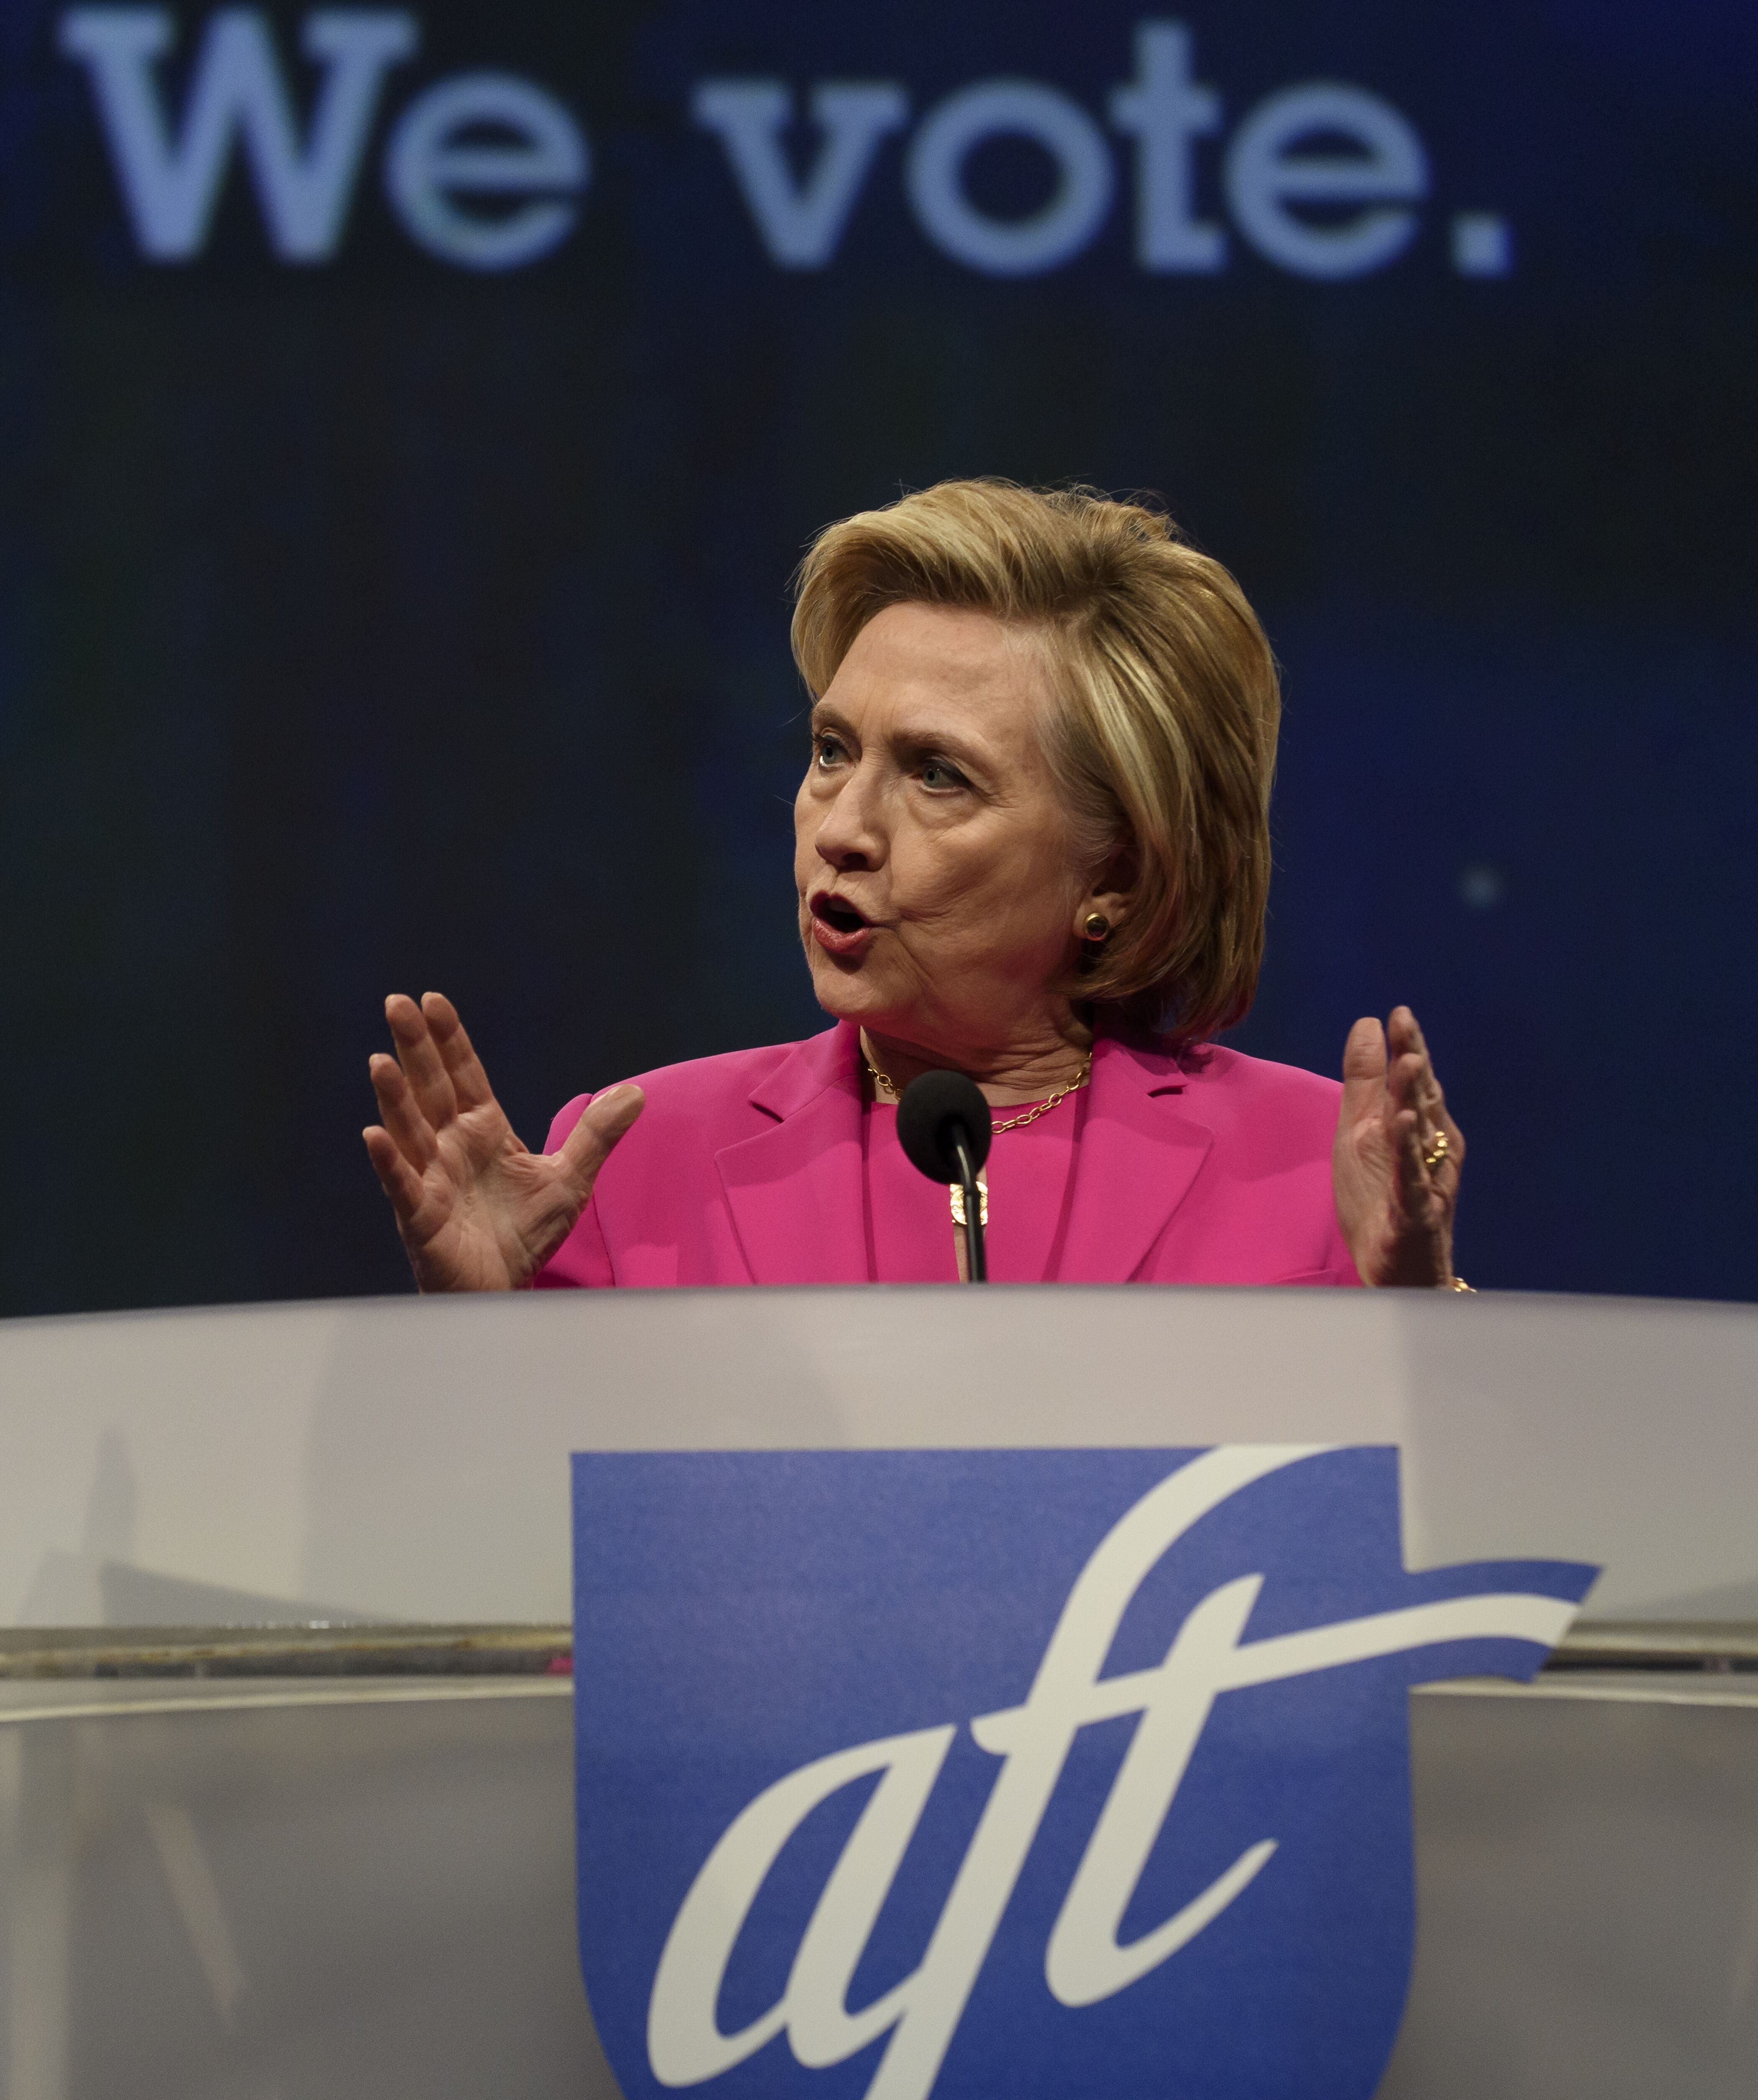 Hillary Clintonat the annual convention of the American Federation of Teachers in Pittsburgh in 2018 | Source: Getty Images